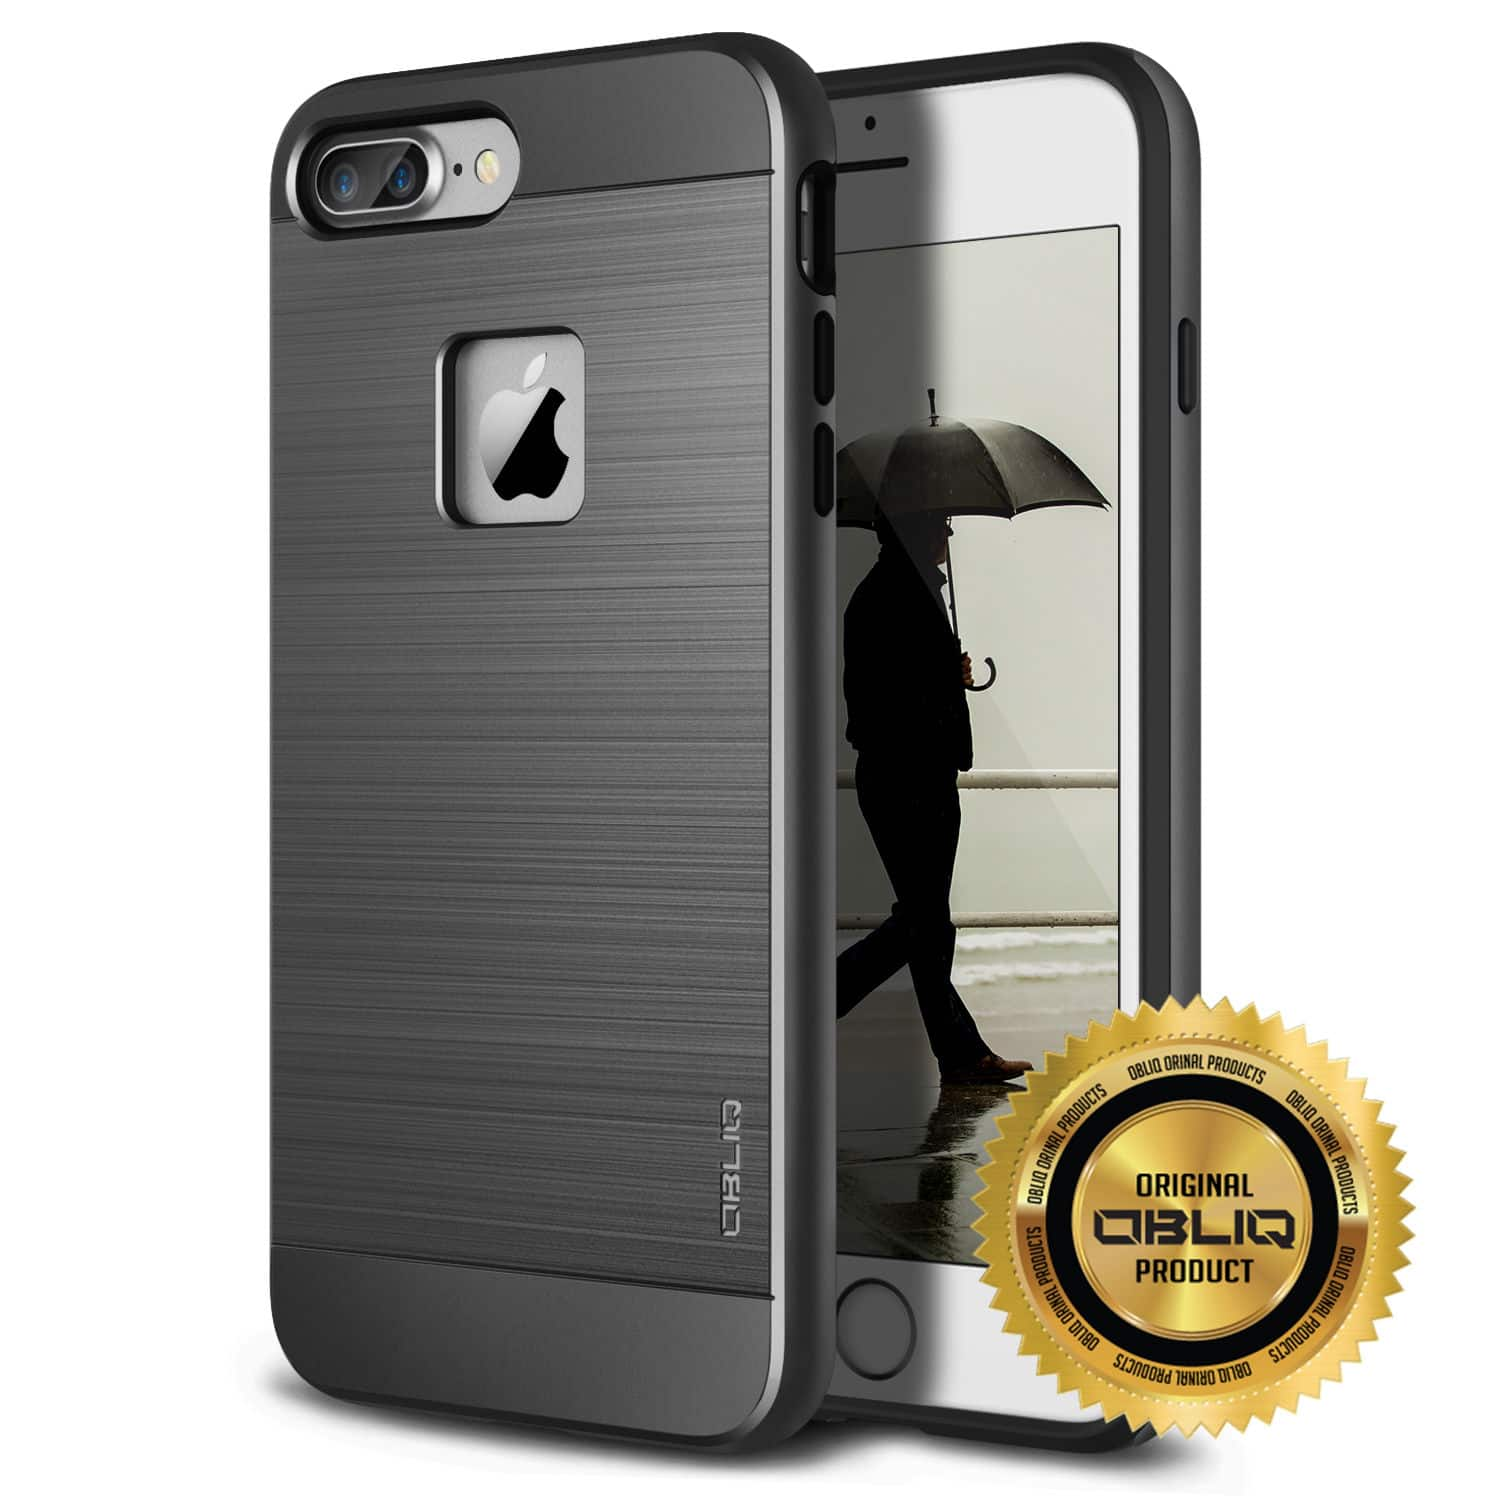 OBLIQ Phone Cases for iPhone 7 / 7 Plus, Google Pixel / Pixel XL and LG V20 from $2.99 to $6.99 + Free Shipping @ Obliq via eBay